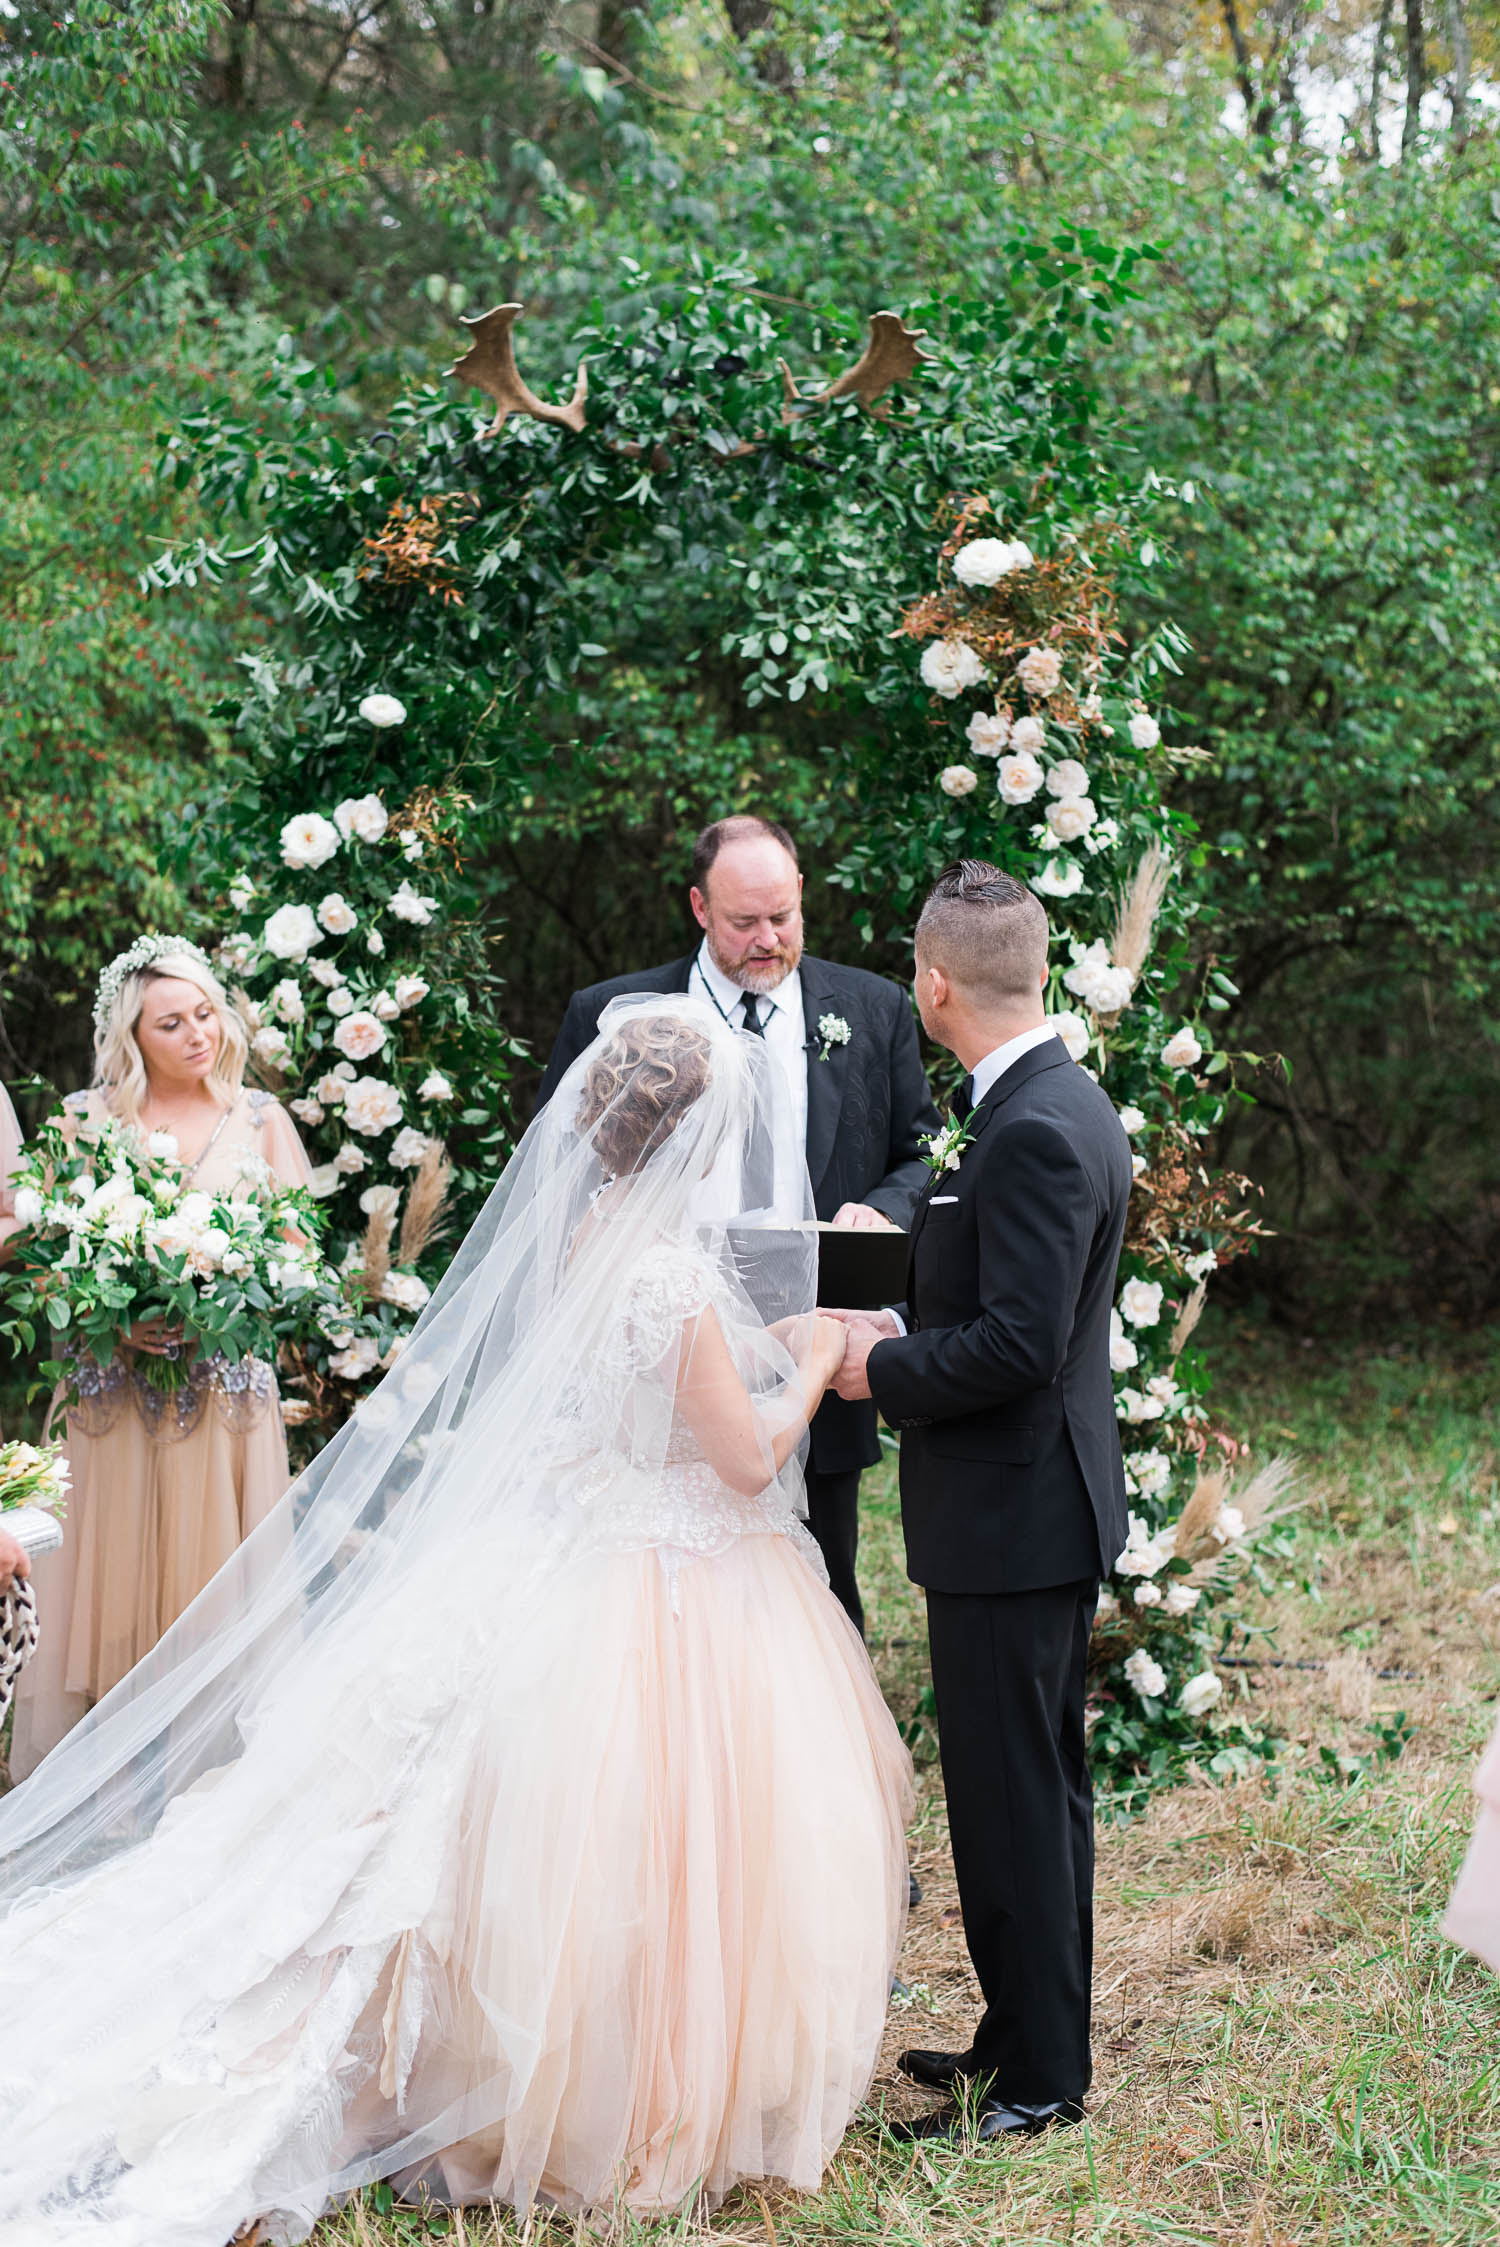 Lush wedding arch with greenery, garden roses, and antlers. Nashville Wedding Floral Design.